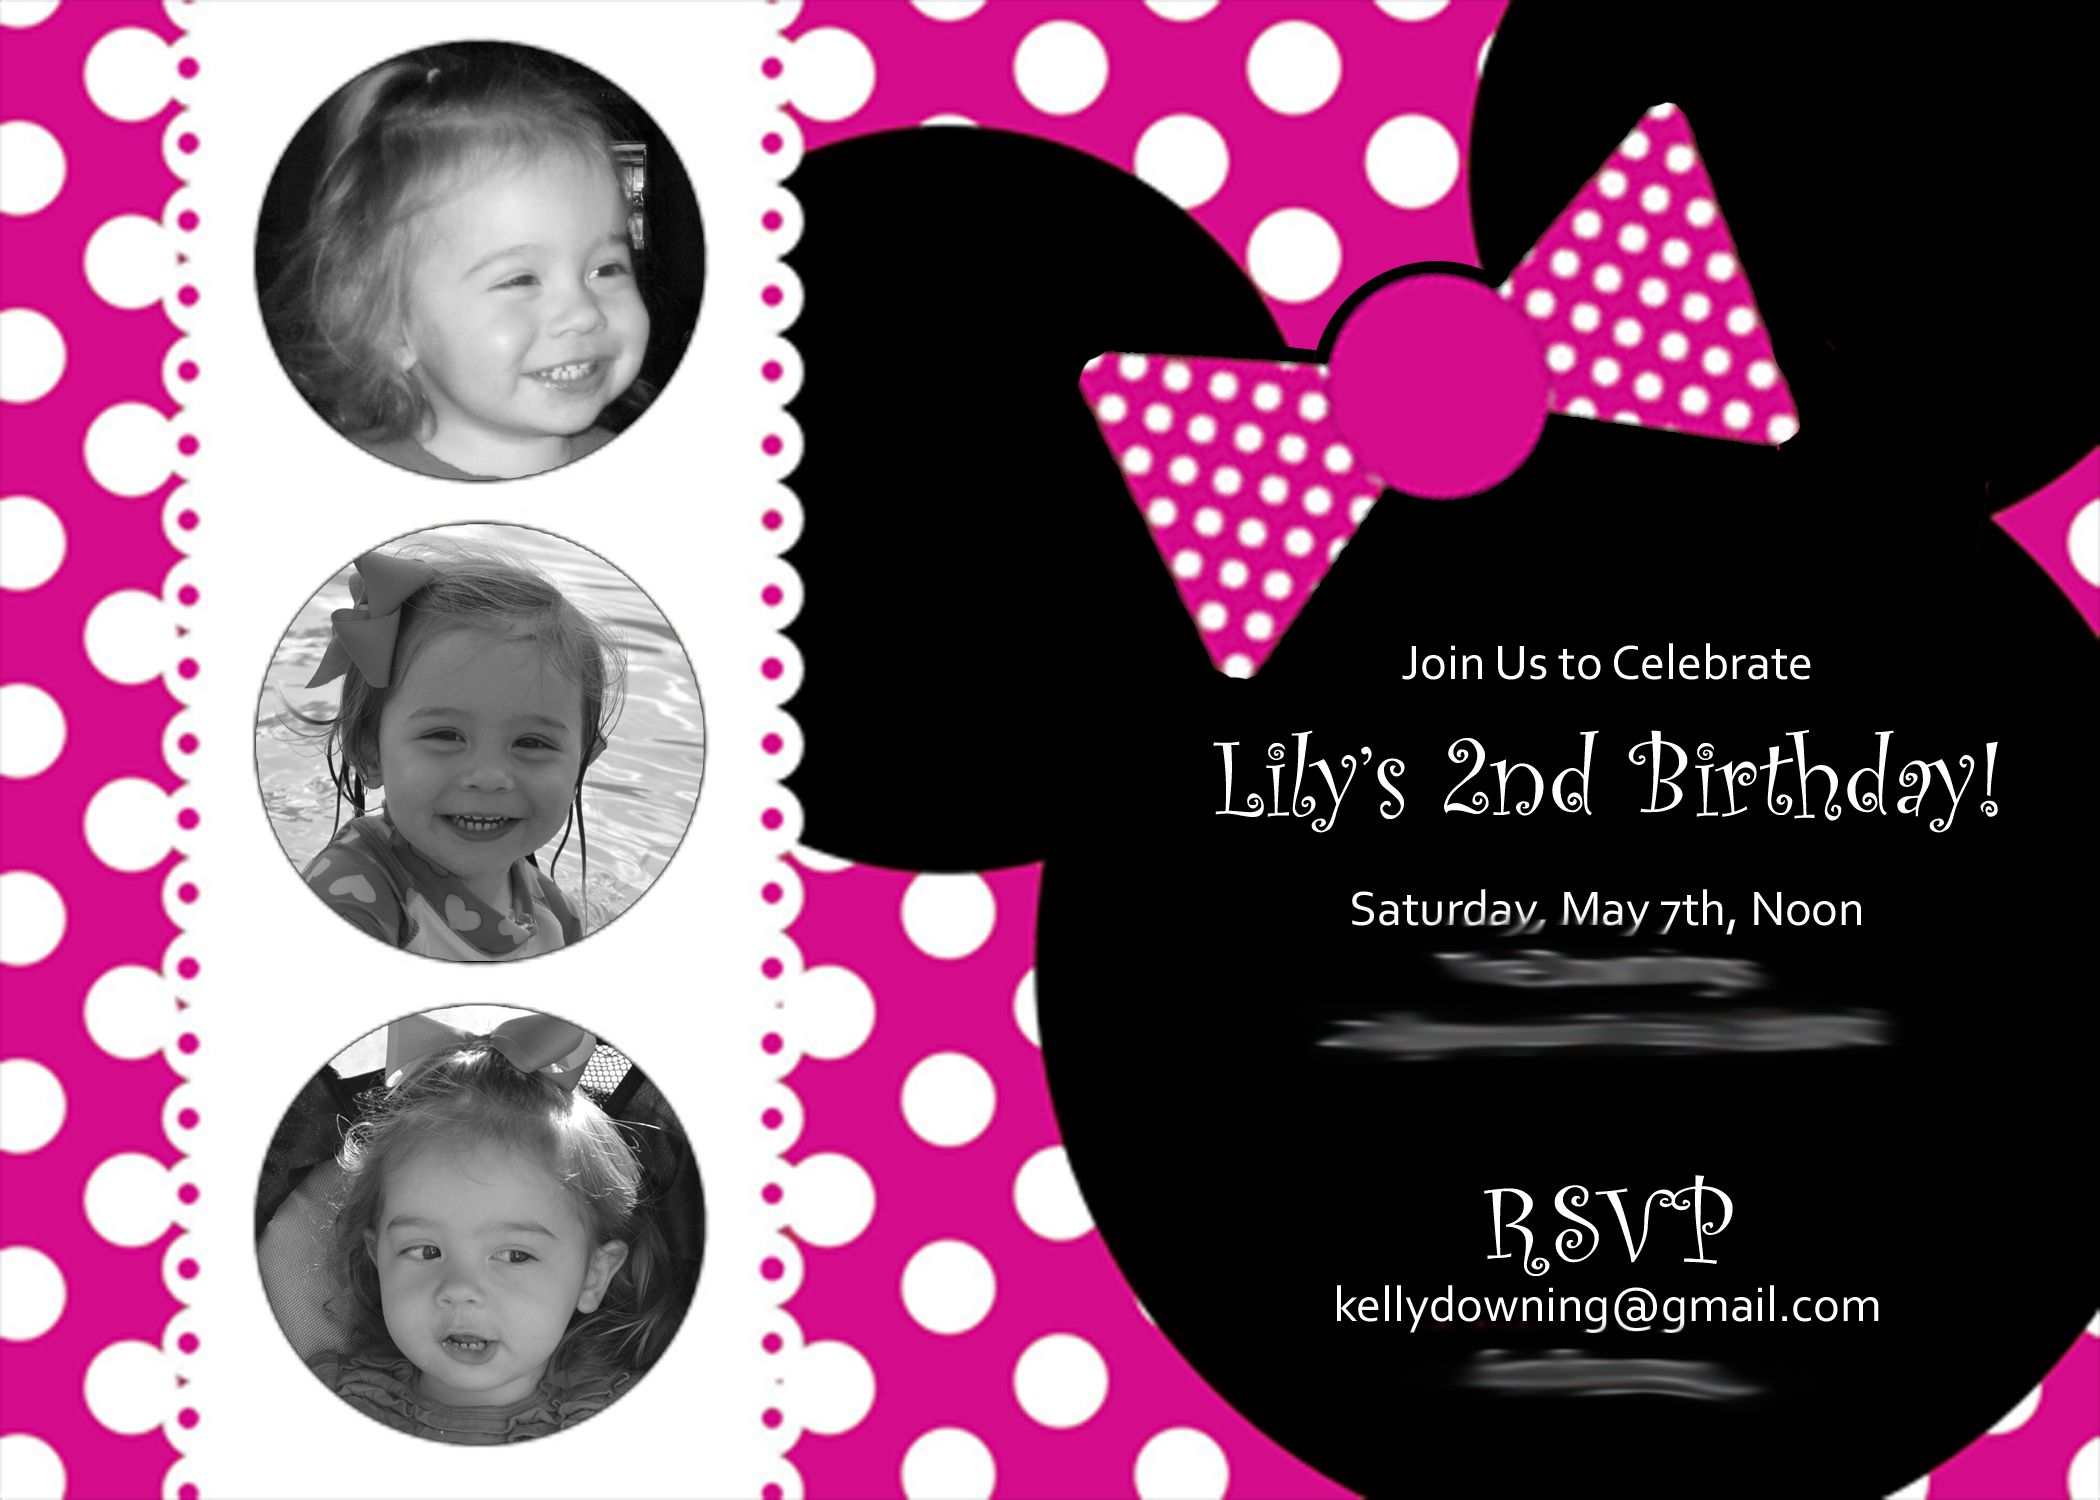 birthday invitation photoshop template ; birthday-invitation-template-photoshop-elements